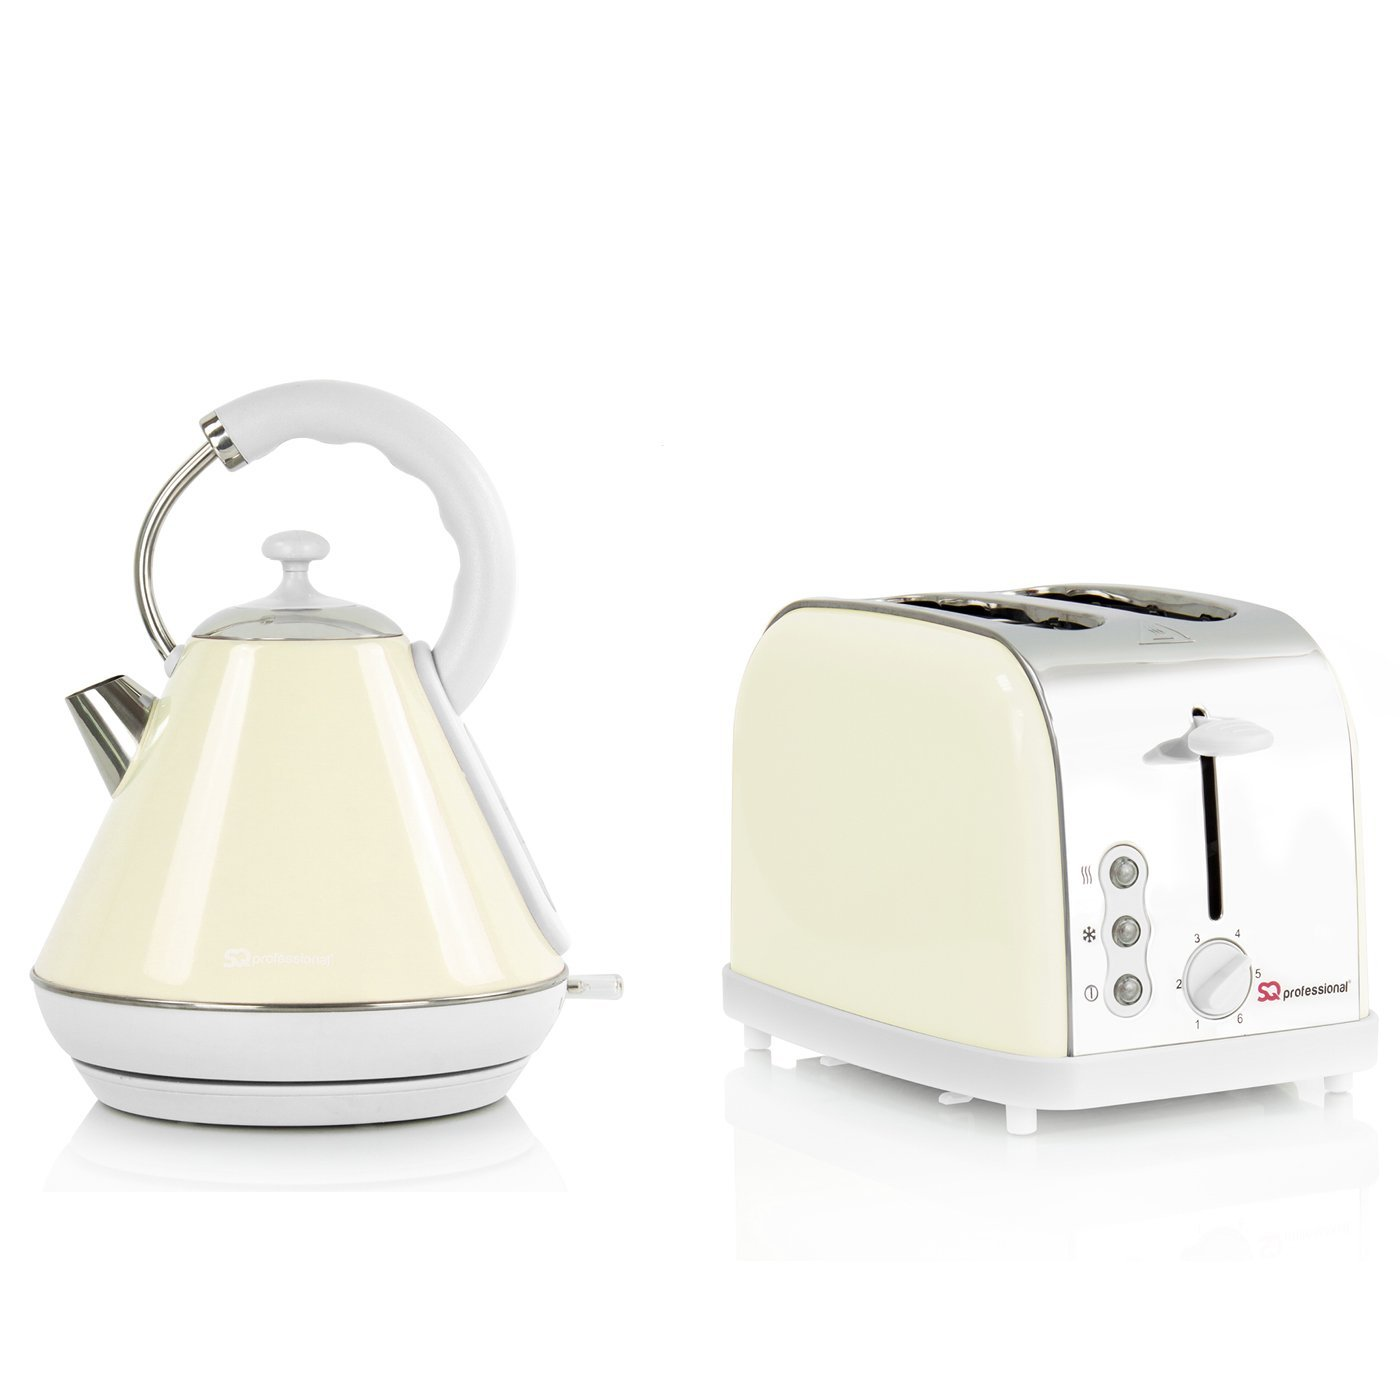 Electric Kettle & Toaster Set, Stainless Steel - Cream SQ Pro